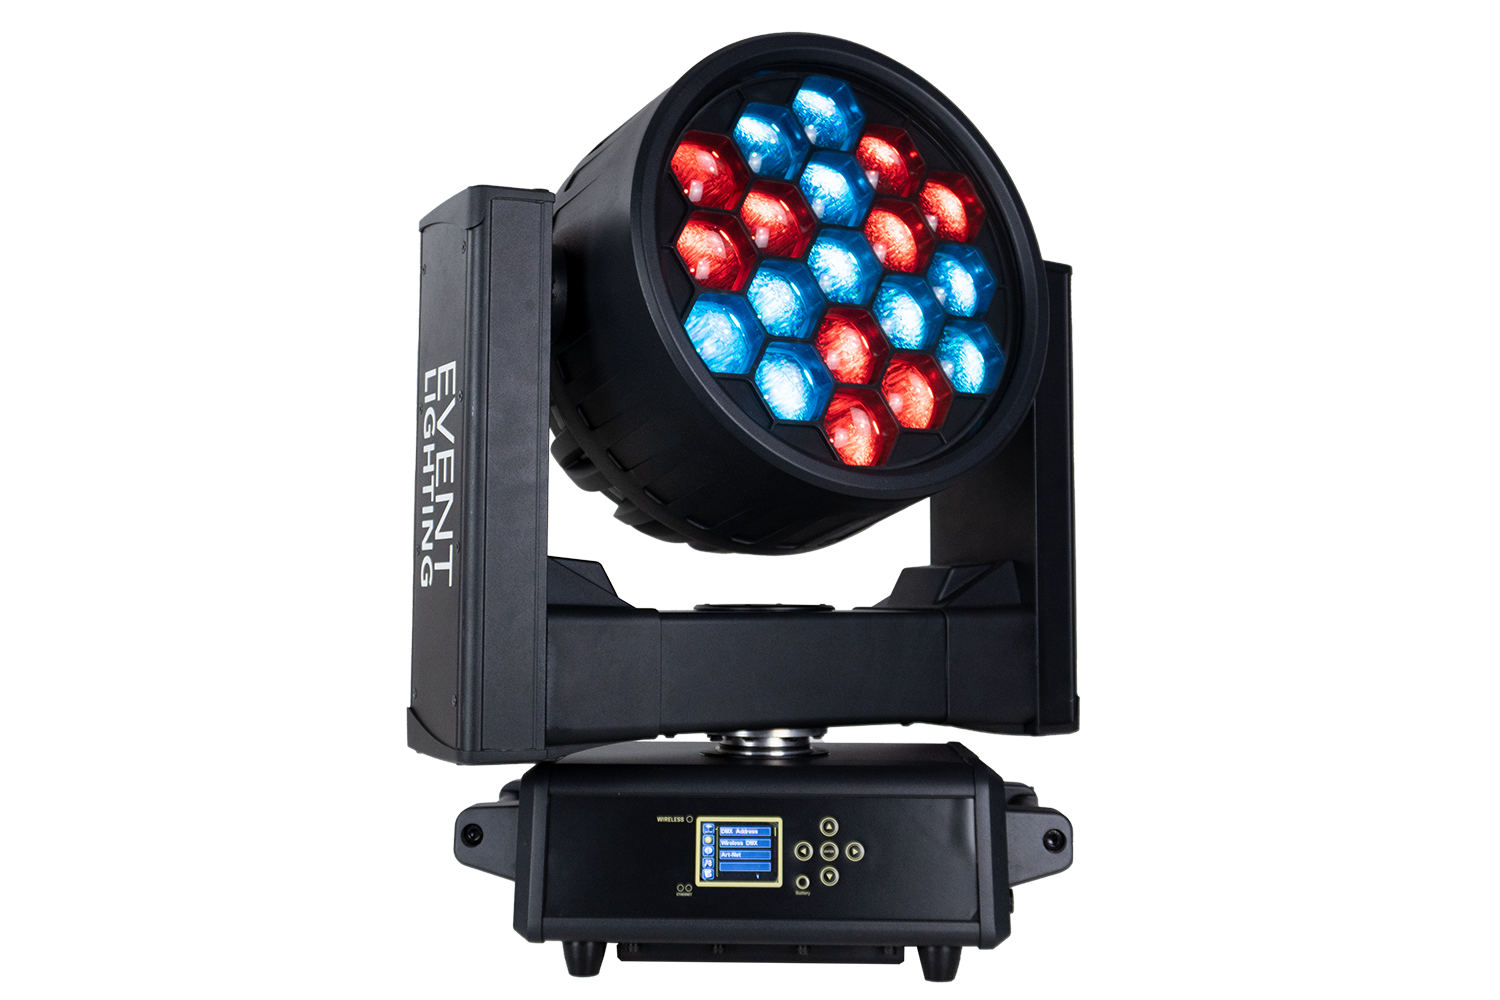 Event Lighting M19IPW40RGBW outdoor wash moving head, hero, red and blue